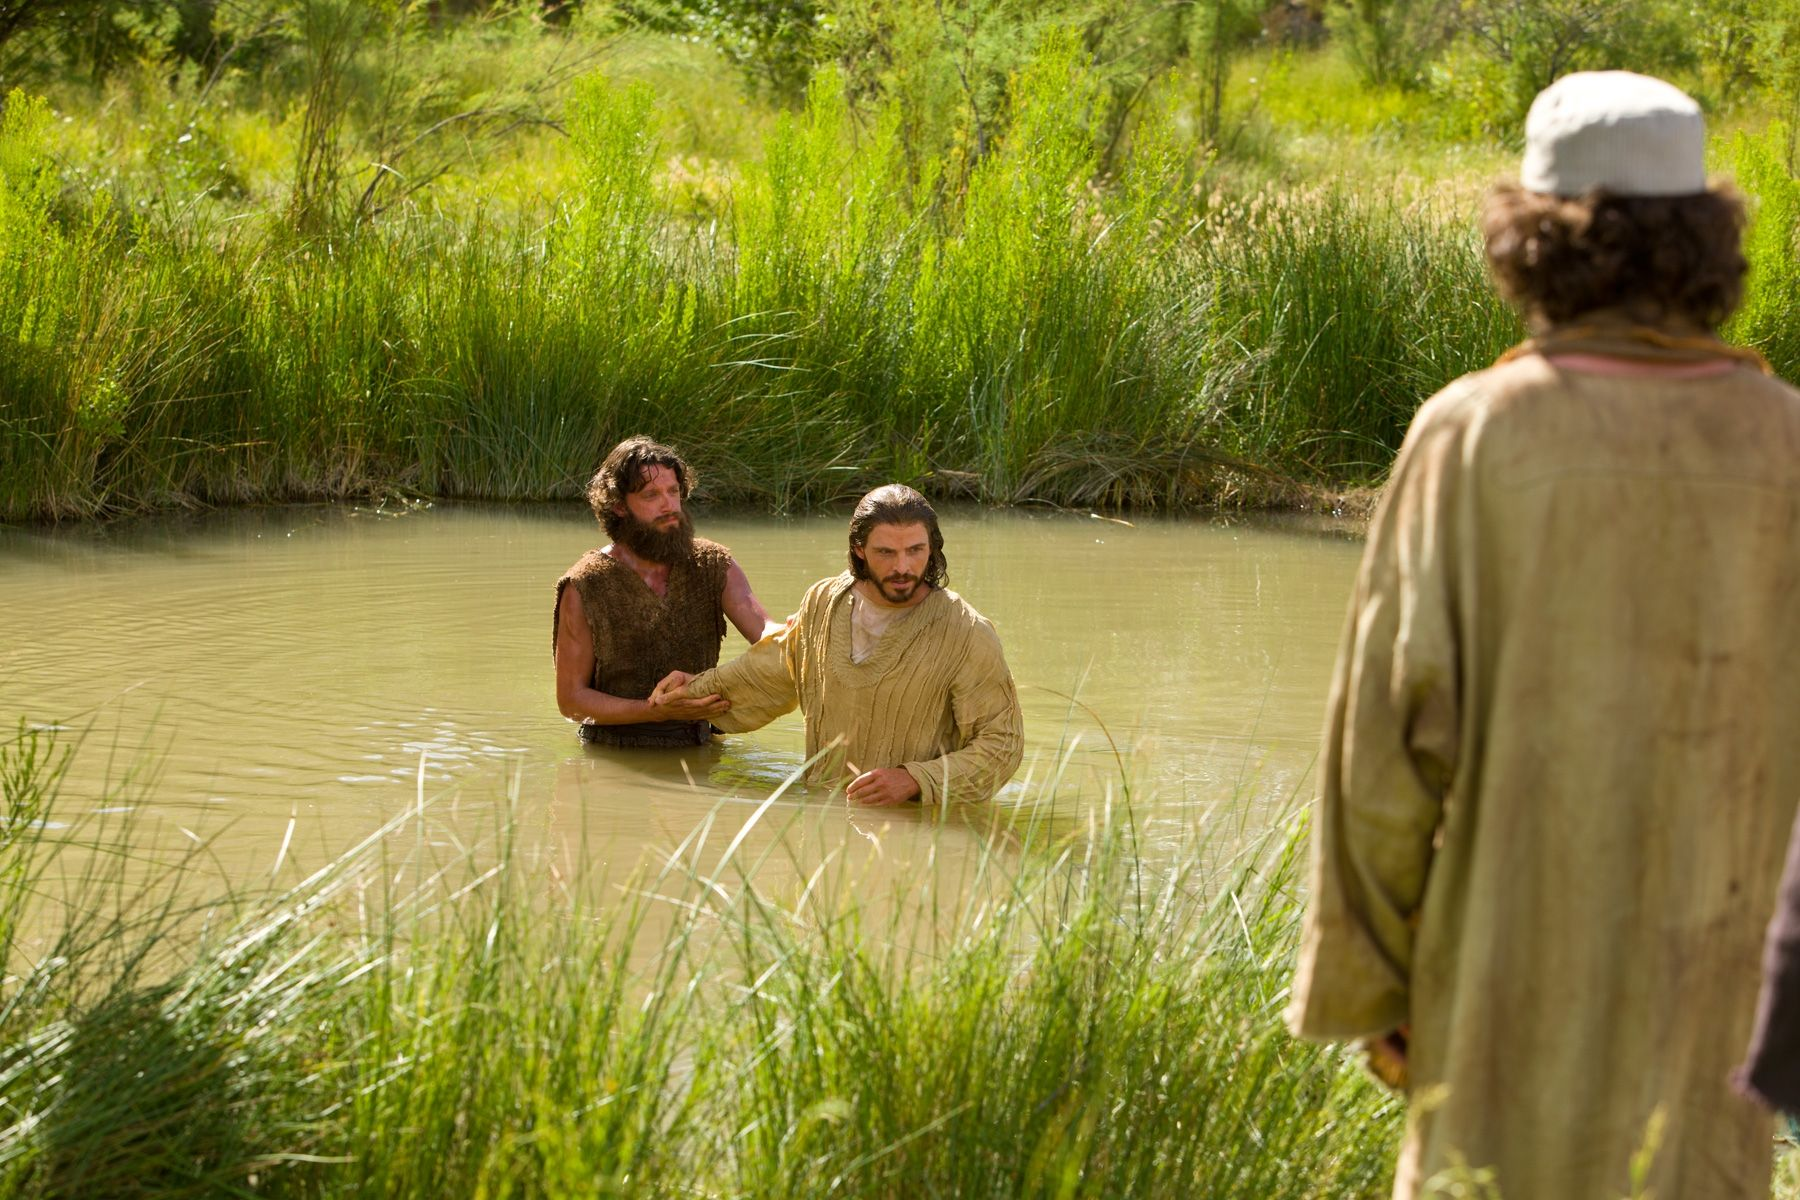 After being baptized, Jesus leaves the waters of Jordan.